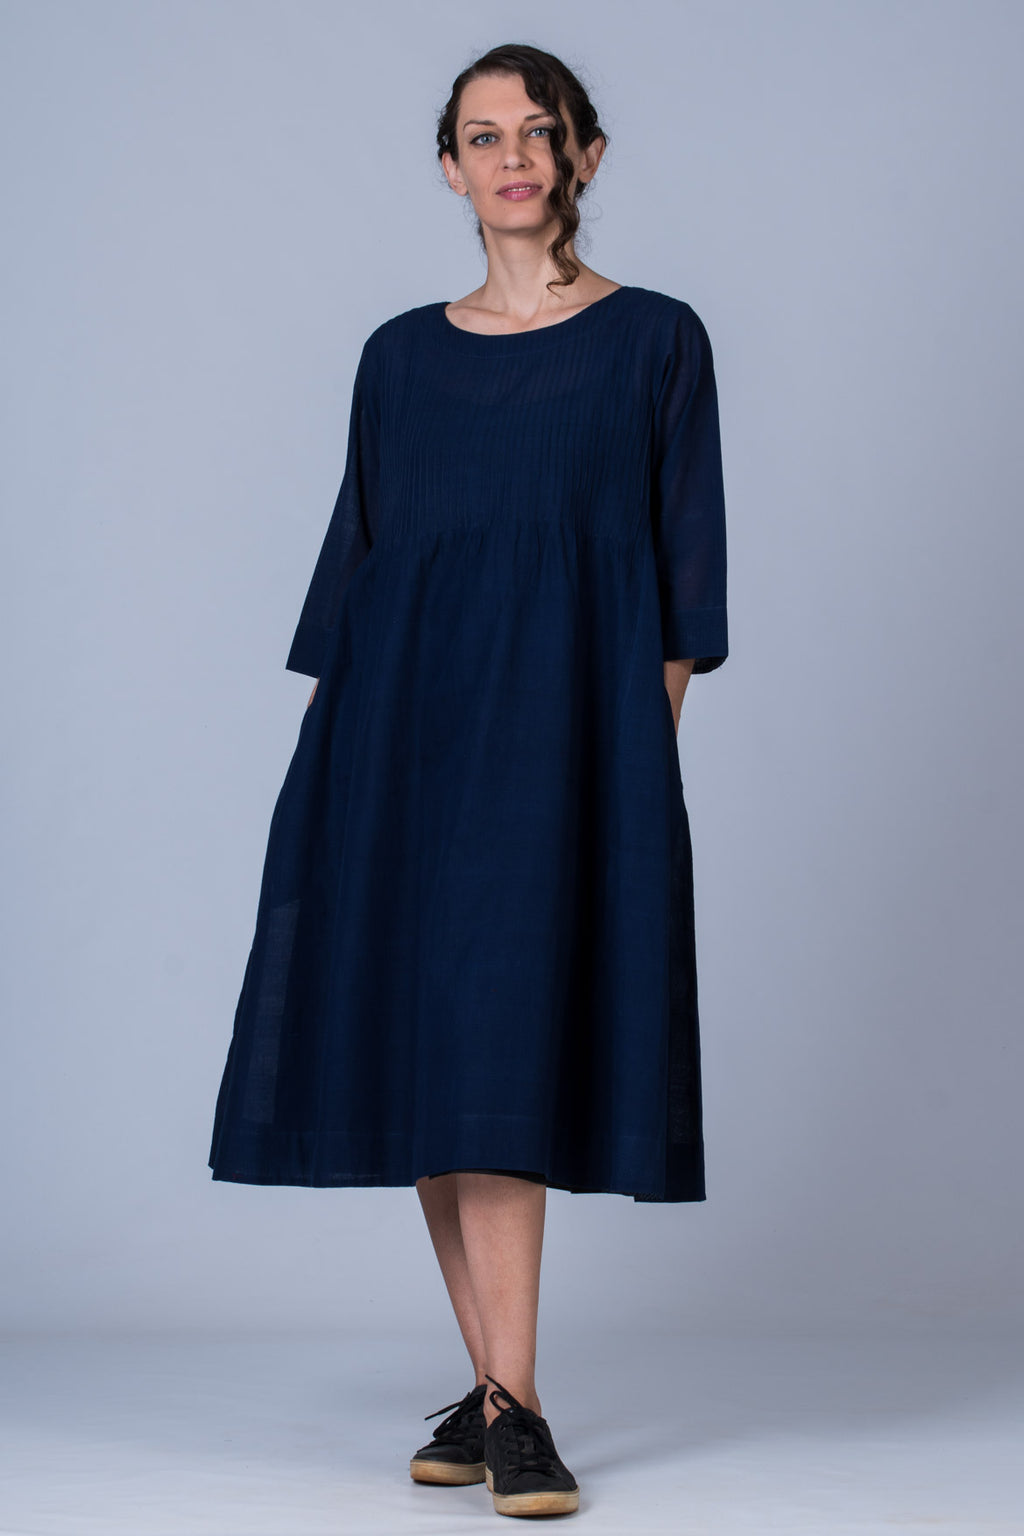 Indigo Cotton Dress - UDUPU